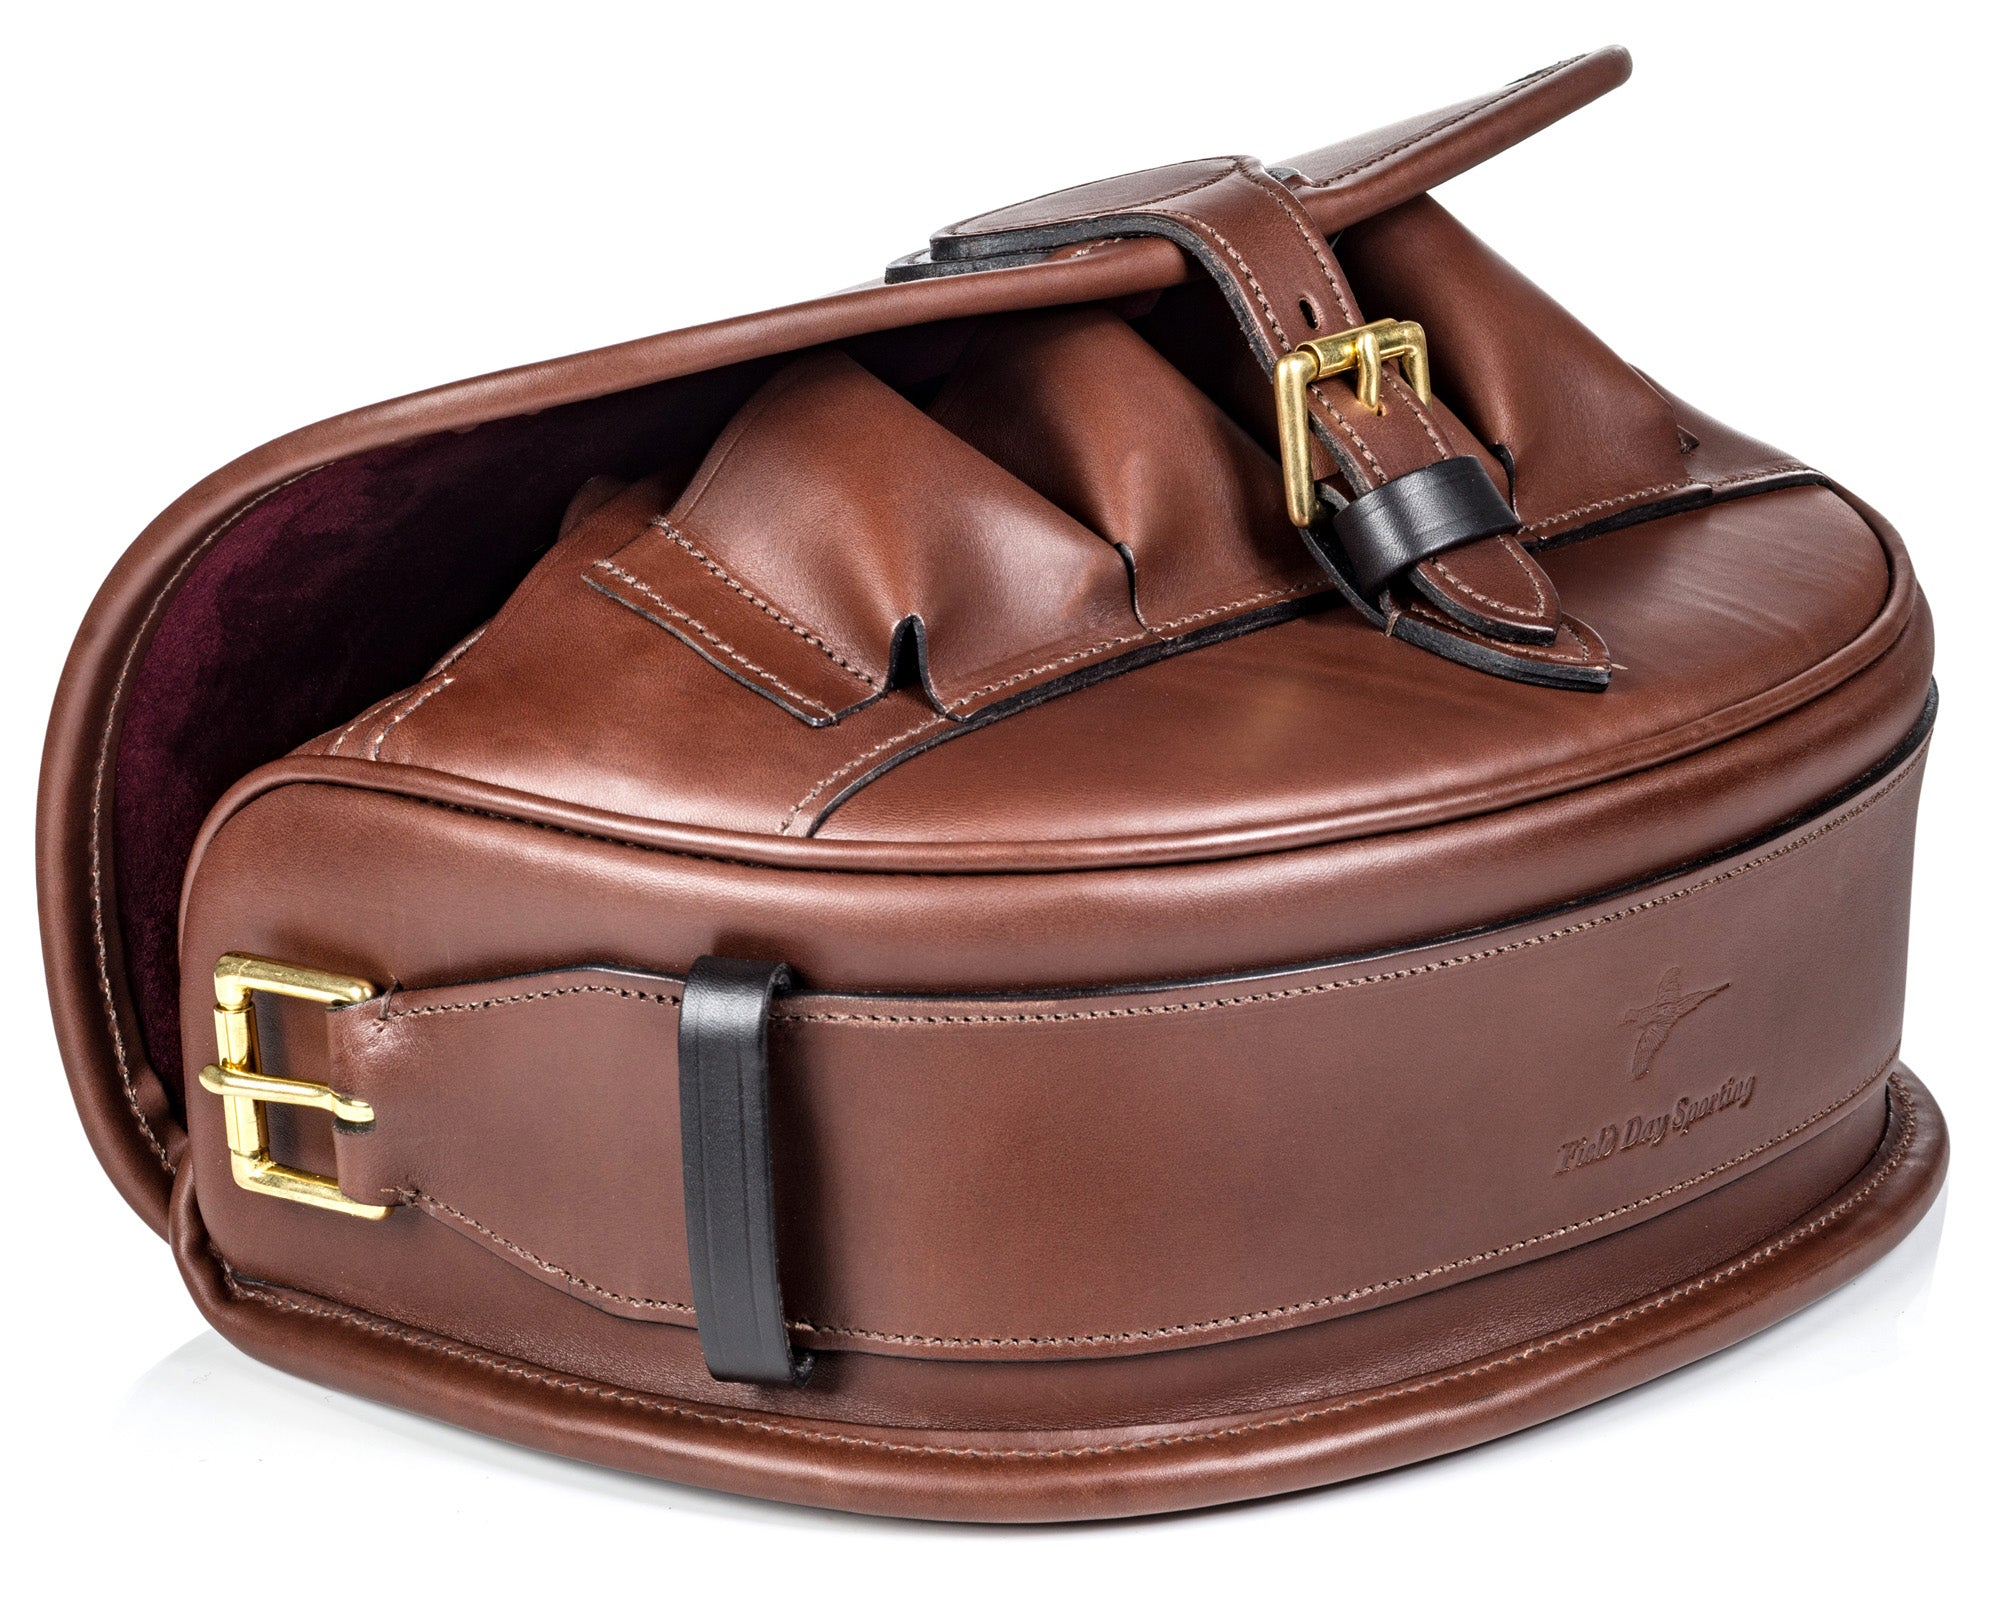 The Field Day Sporting Leather Front Loader Cartridge Bag